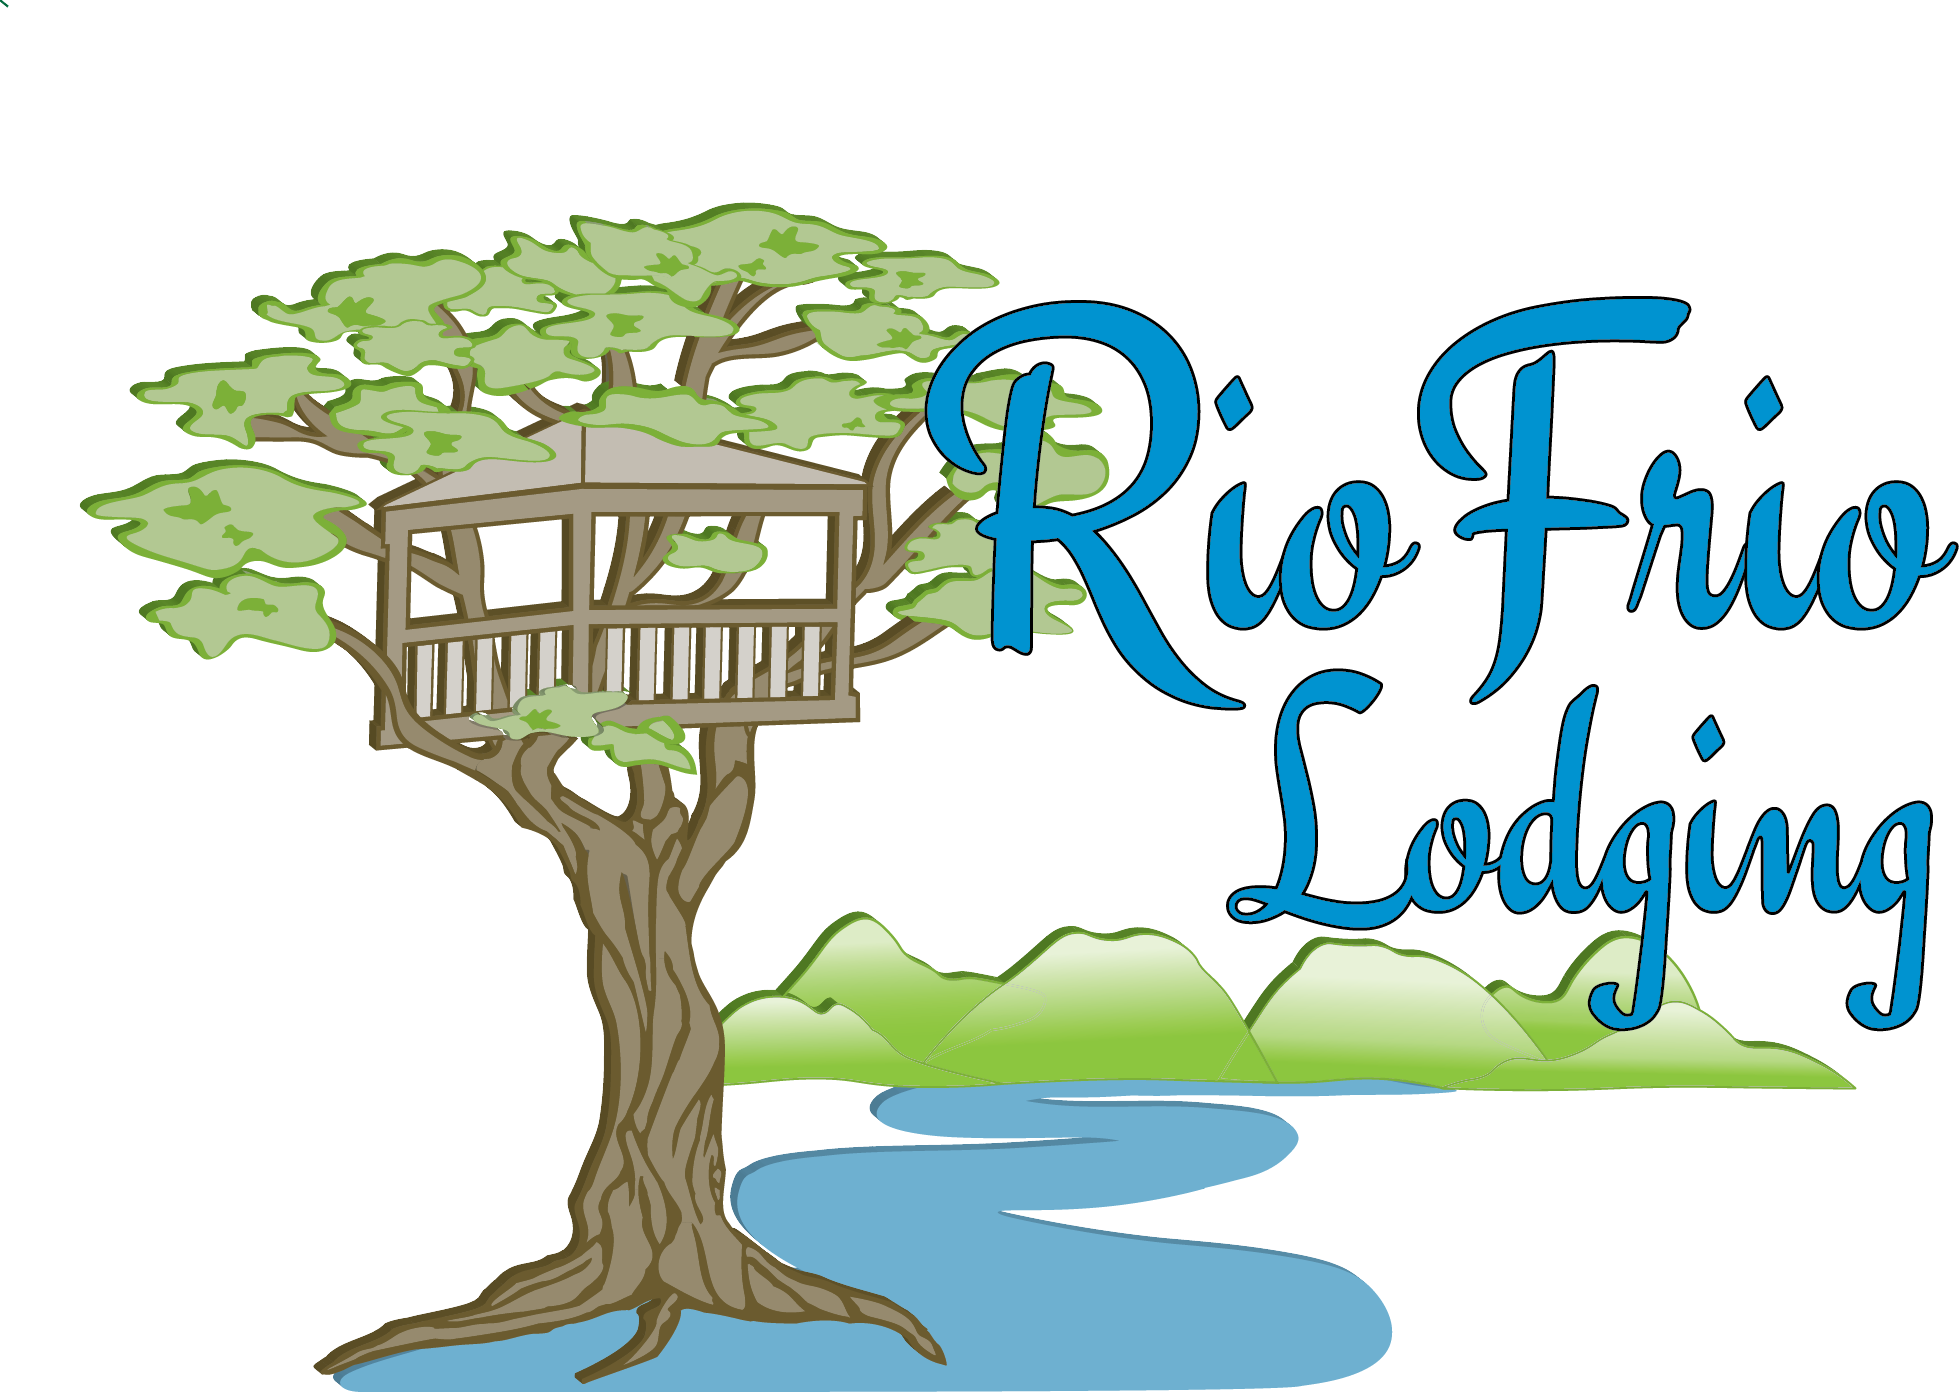 Trees and house clipart clipart freeuse download Frio River Treetop - Rio Frio Lodging clipart freeuse download